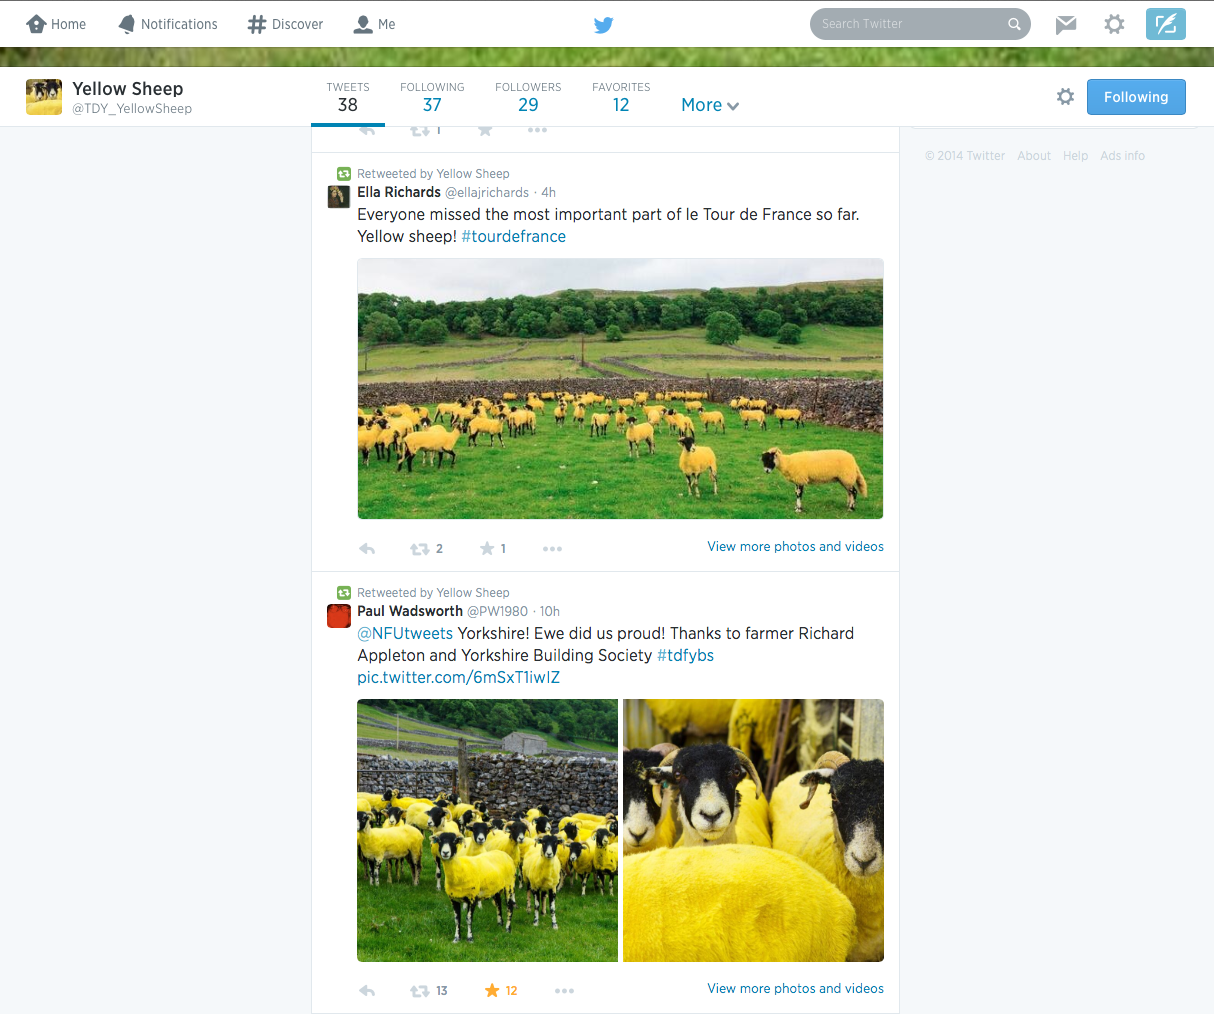 Yellow Sheep Twitter